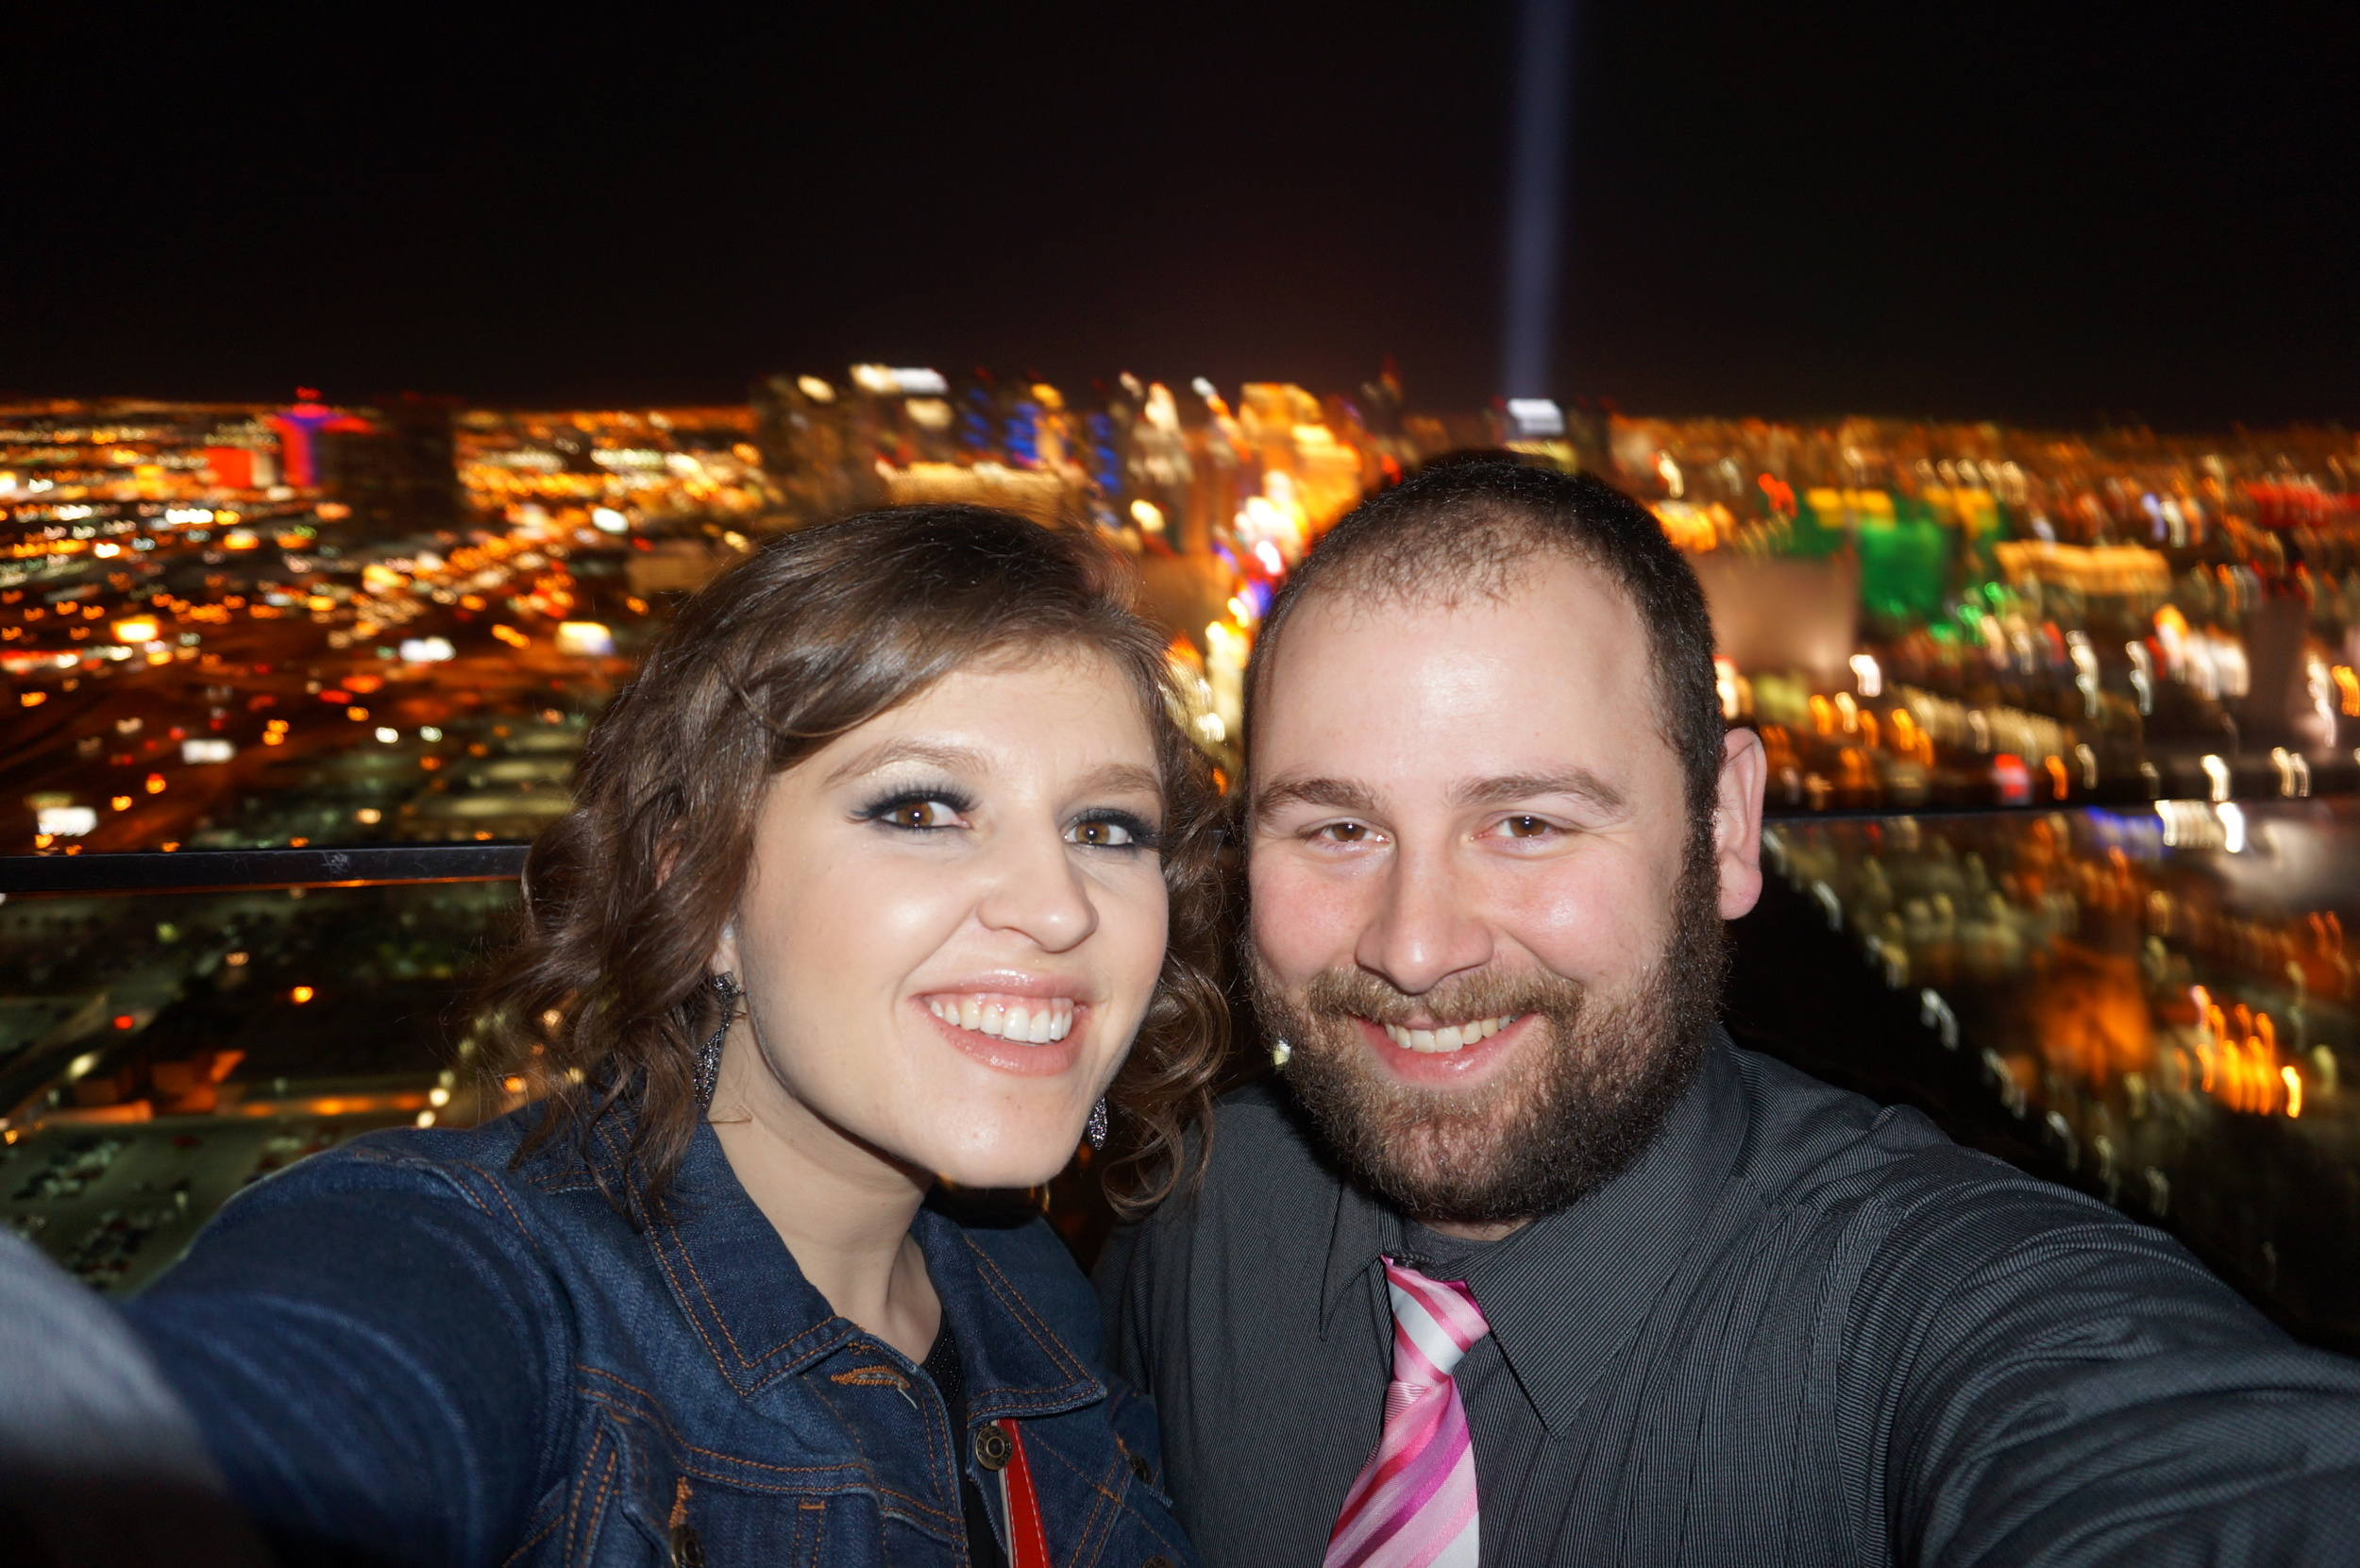 A selfie with a view: an amazing rooftop bar in Vegas with my Love.